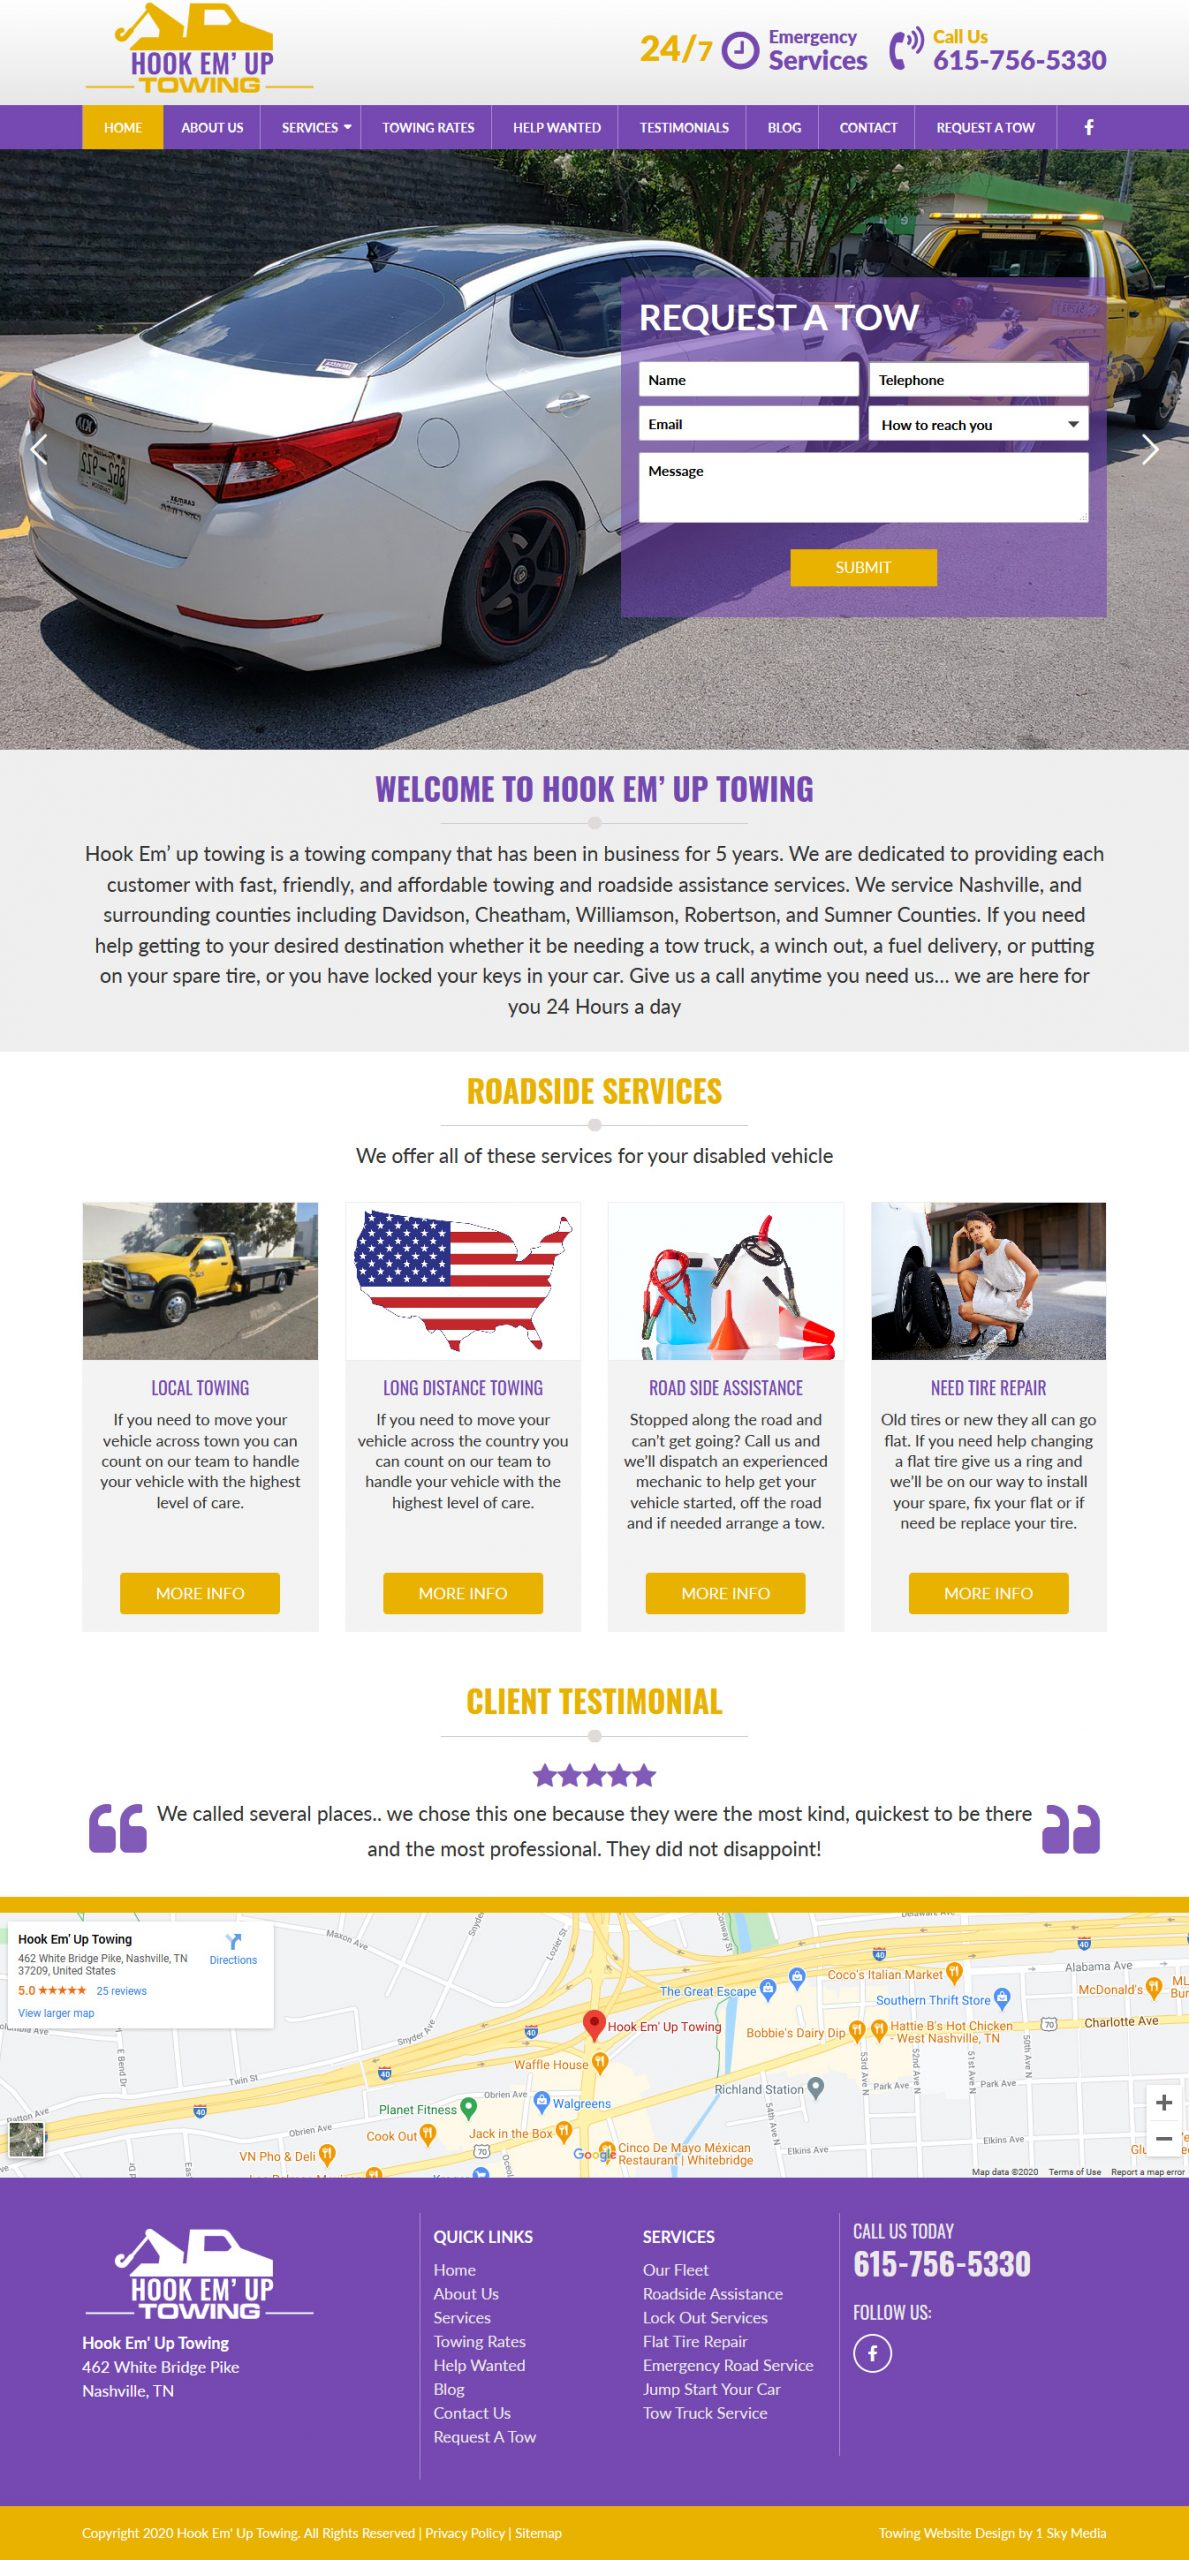 HookEmUp Towing Website Design